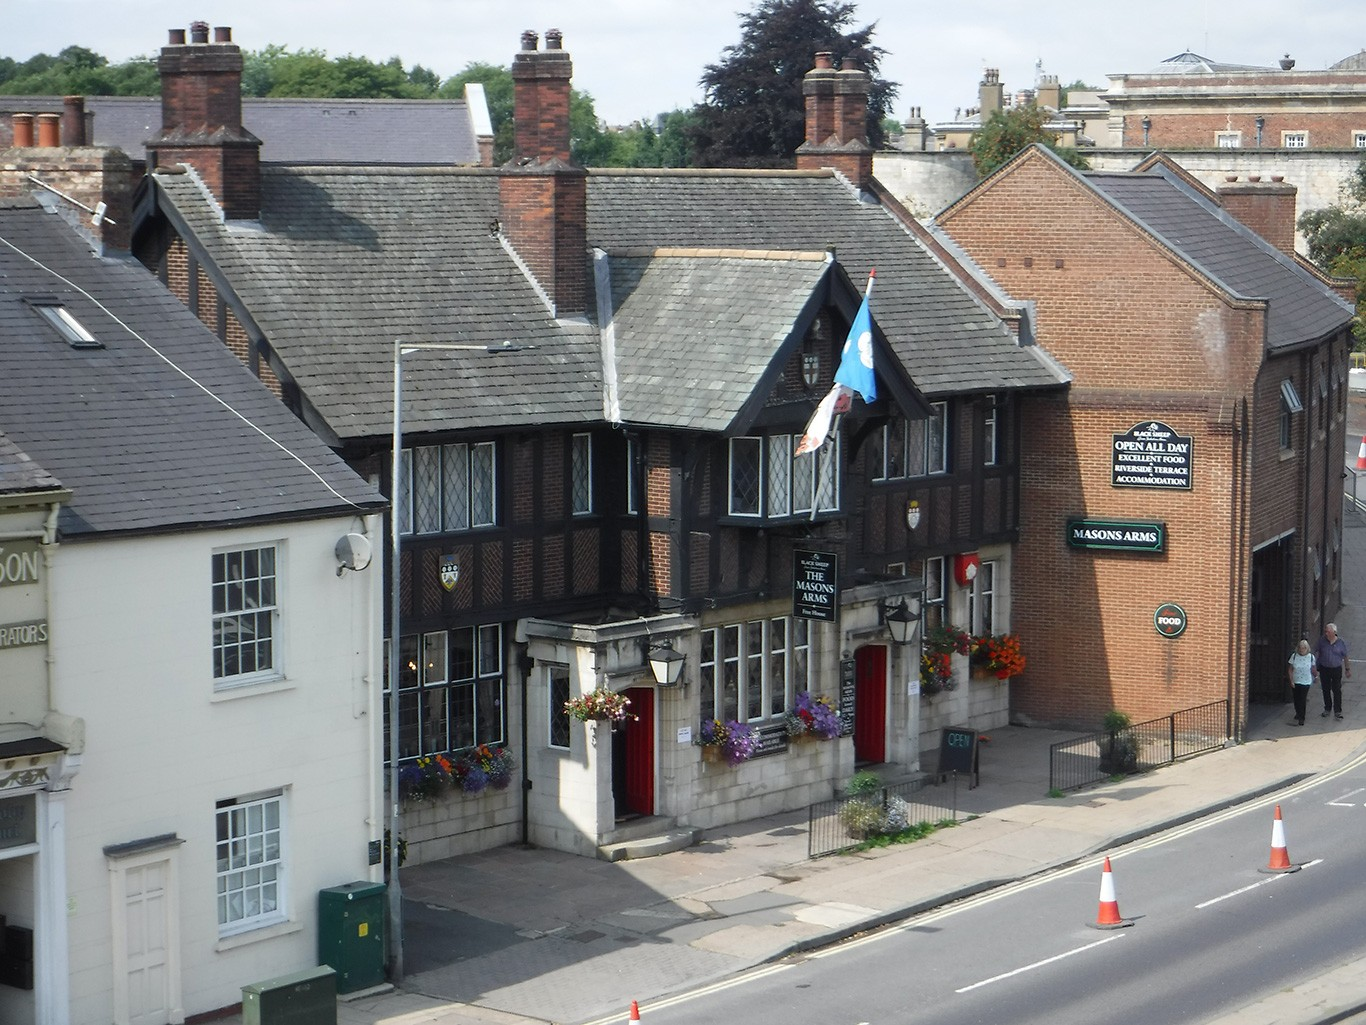 Mason's Arms in York from the Walls